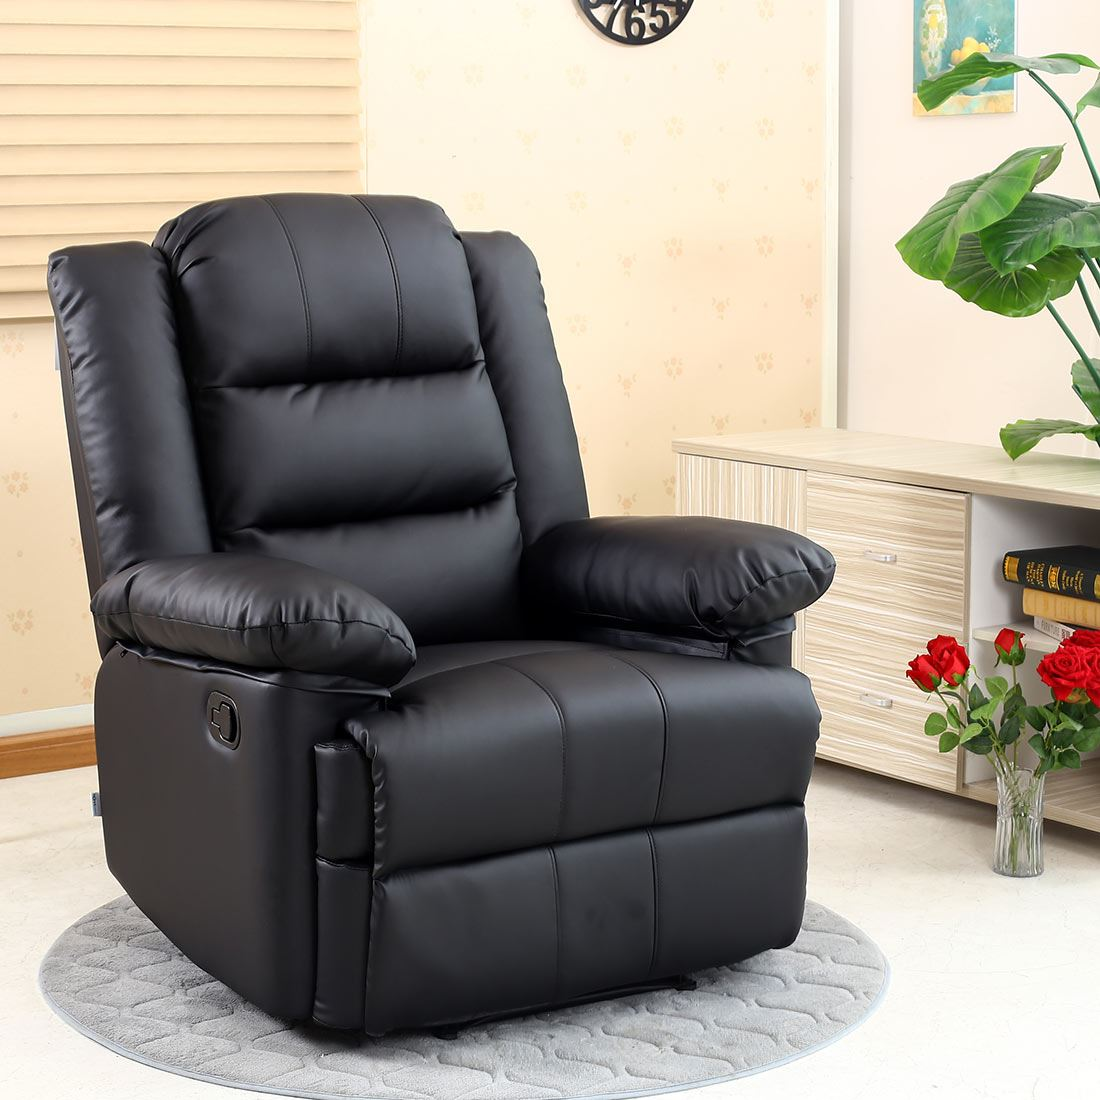 gaming chair ebay lazy boy office chairs depot loxley leather recliner armchair sofa home lounge